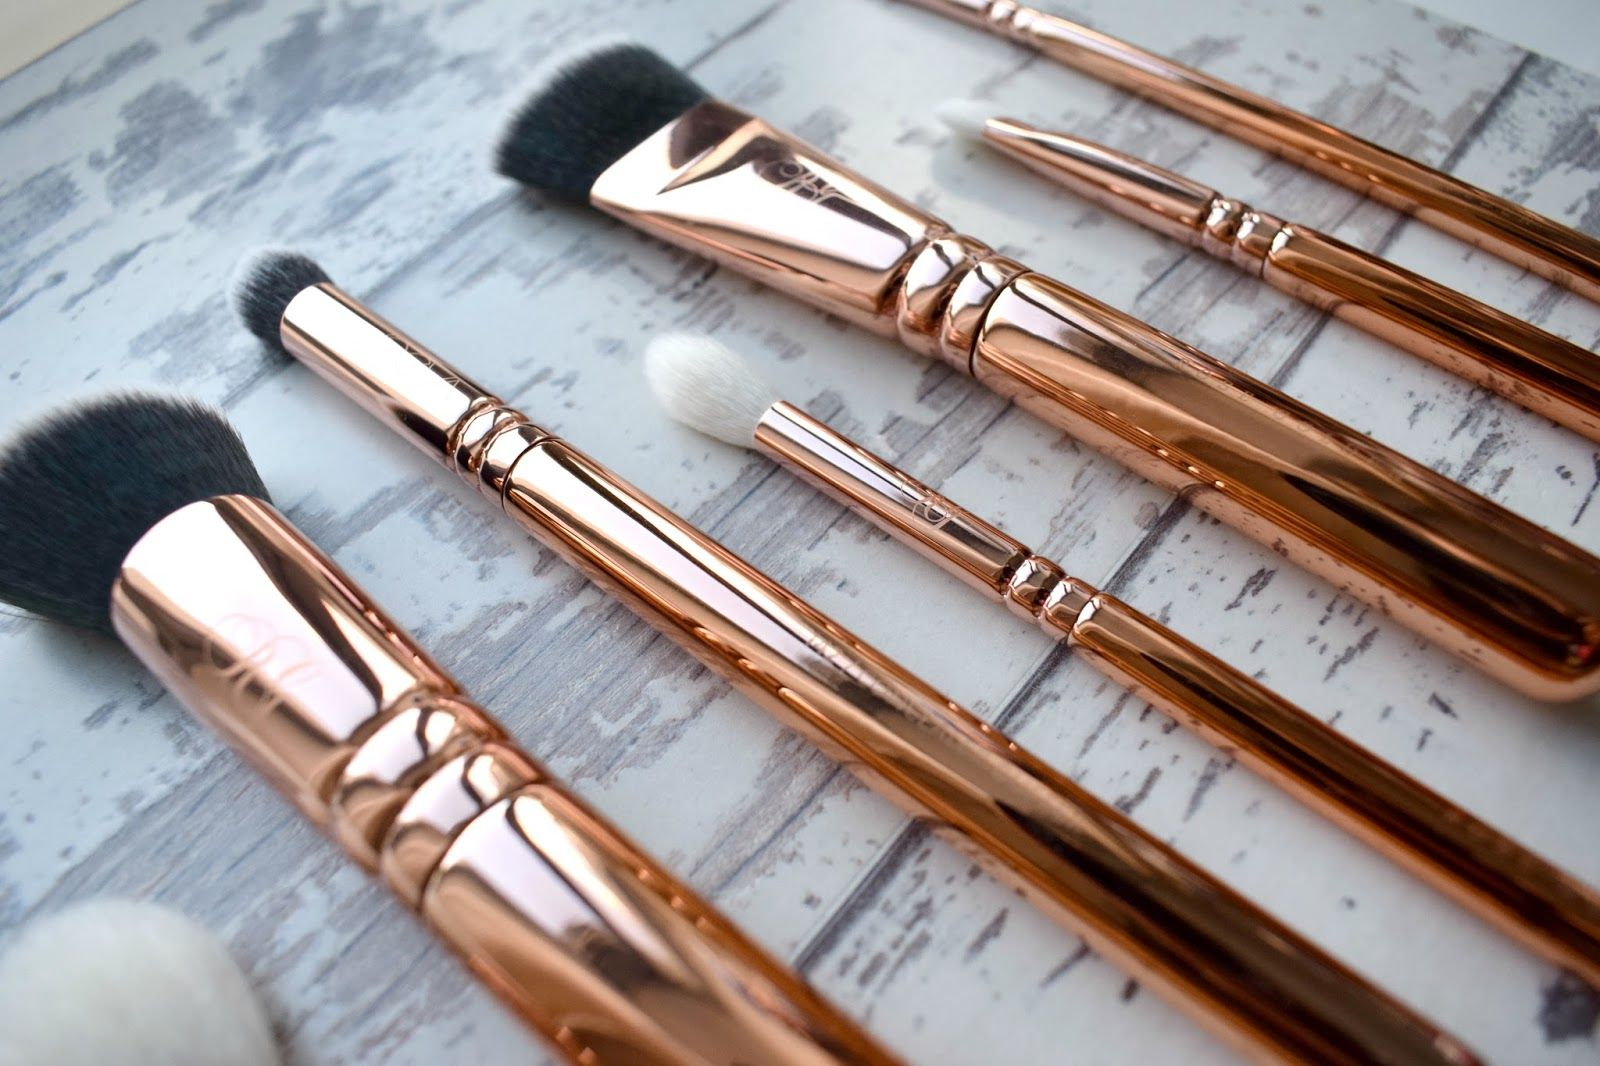 da52a1721cf682 Zoeva Rose Golden Volume Vol 3 Brush Set Collection. Solid Rose Gold Make-Up  Brushes Zoeva Rose Golden Volume Vol 3 Brush Set Collection, Zoeva Rose  Gold ...